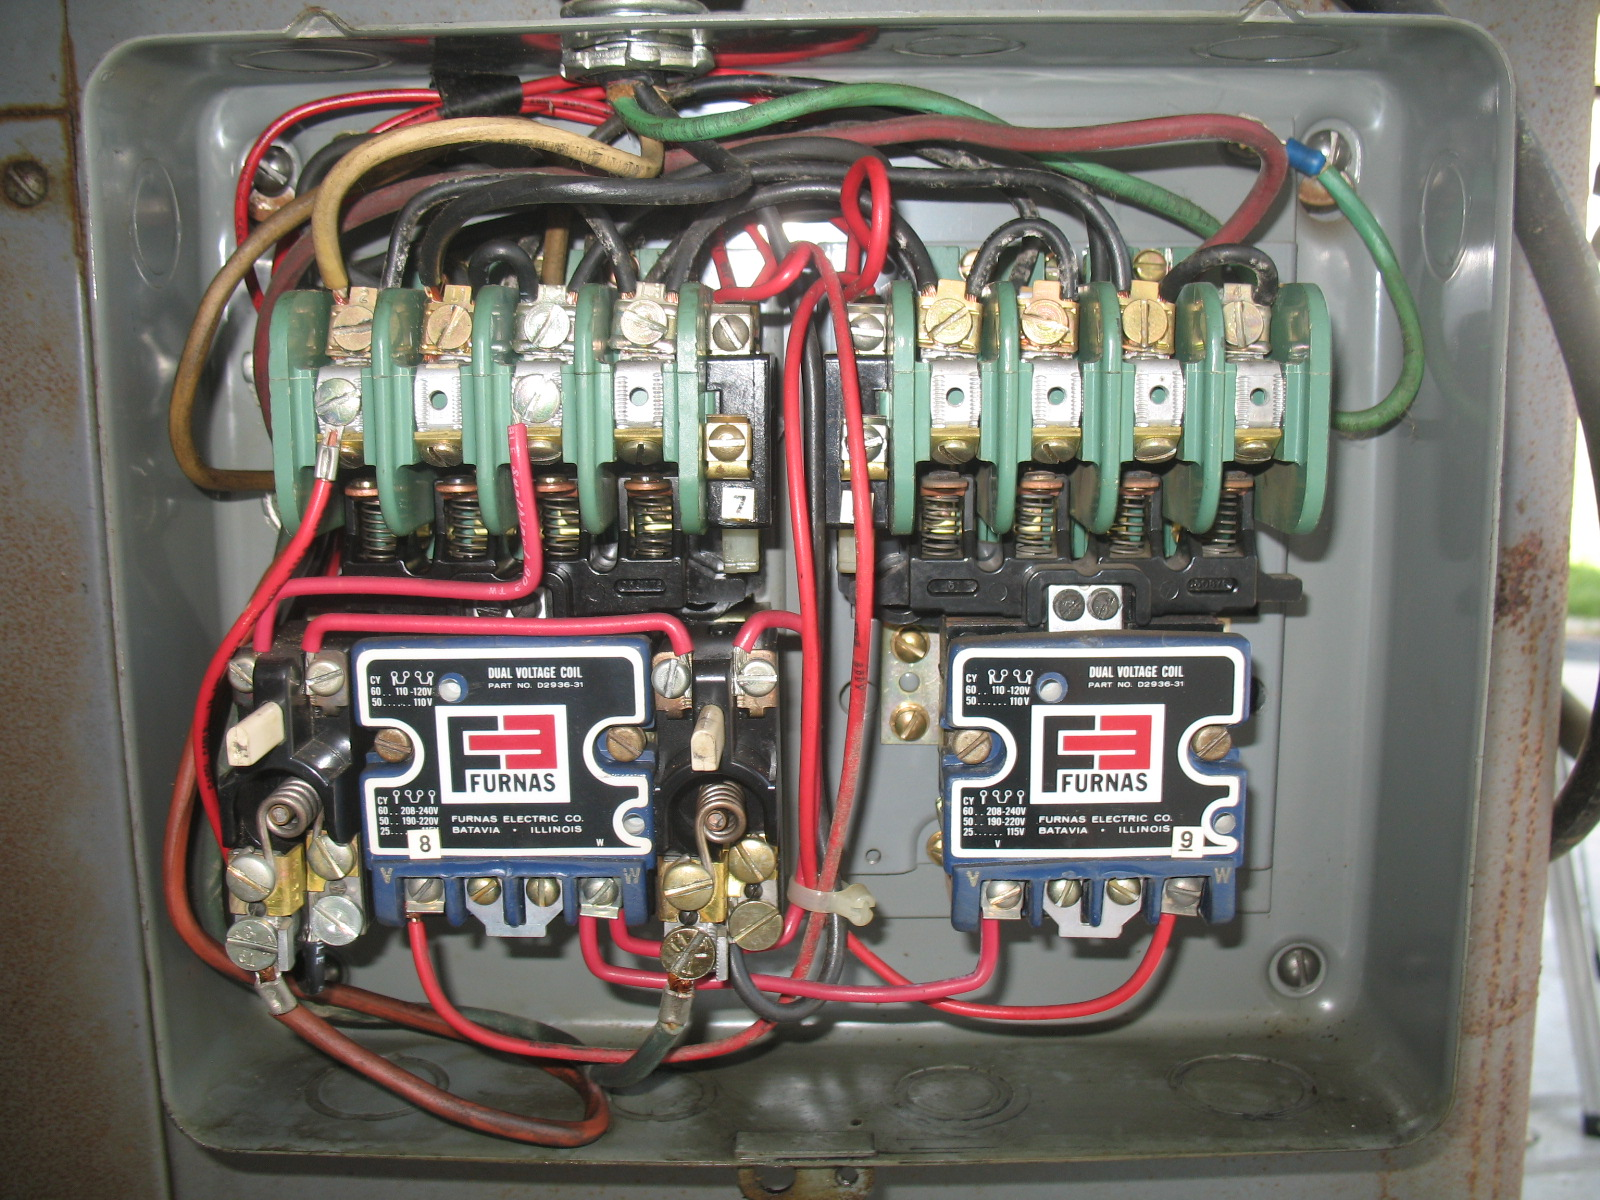 I Saw Your Post Regarding An Old Ge Motor Last Year And Wiring It Up. Wiring. J5 Furnas Switch Wiring Diagram At Scoala.co